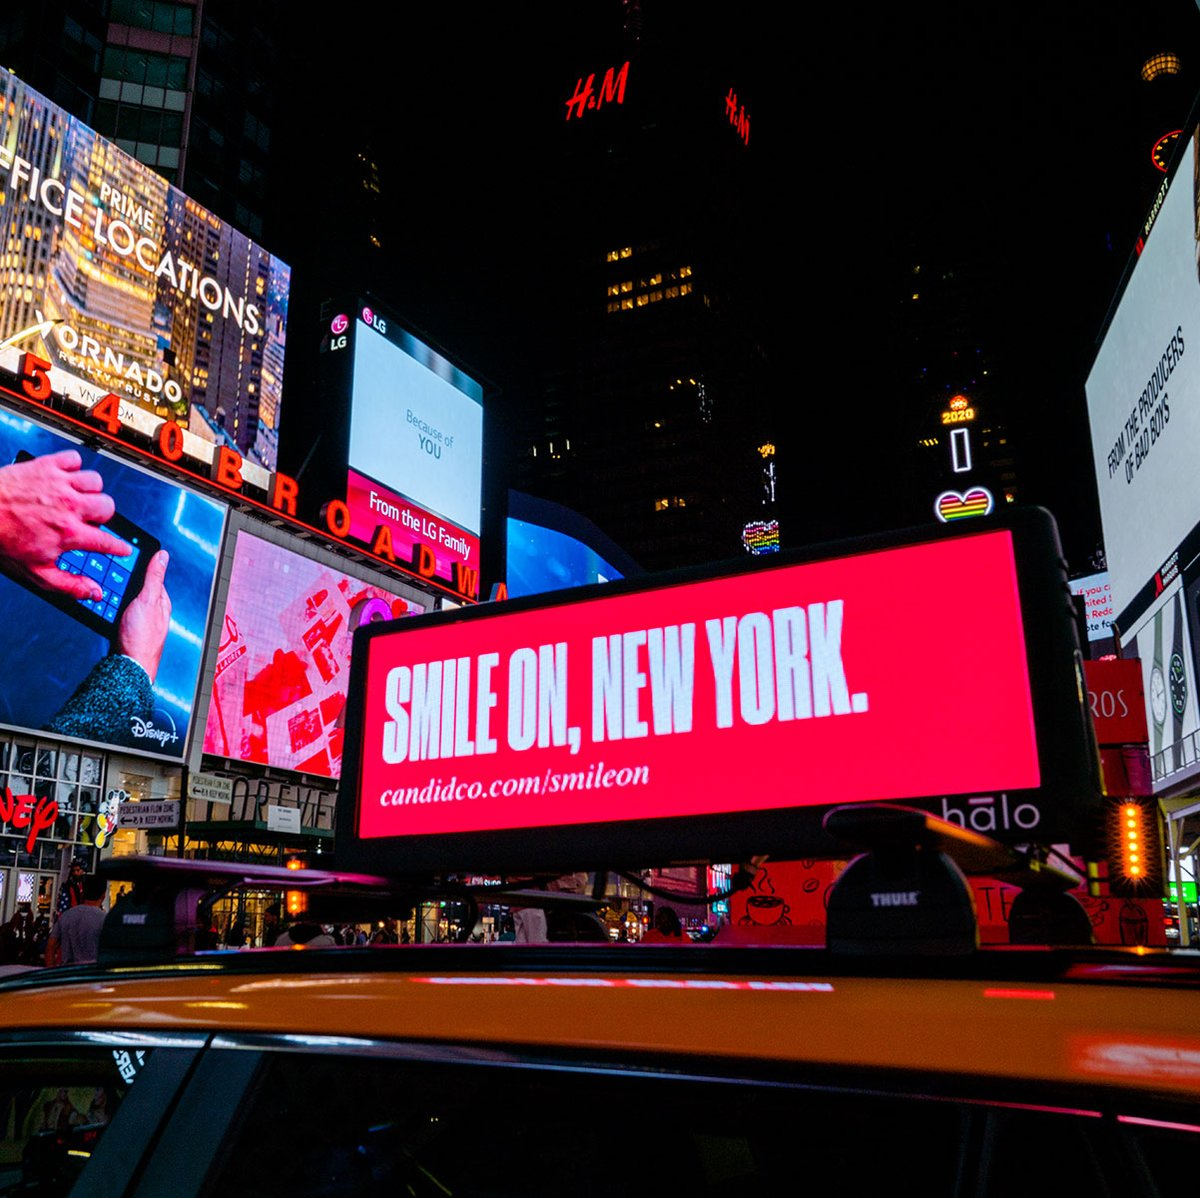 How design and advertising is helping New York rebuild amid the pandemic bit.ly/3dKDLd0